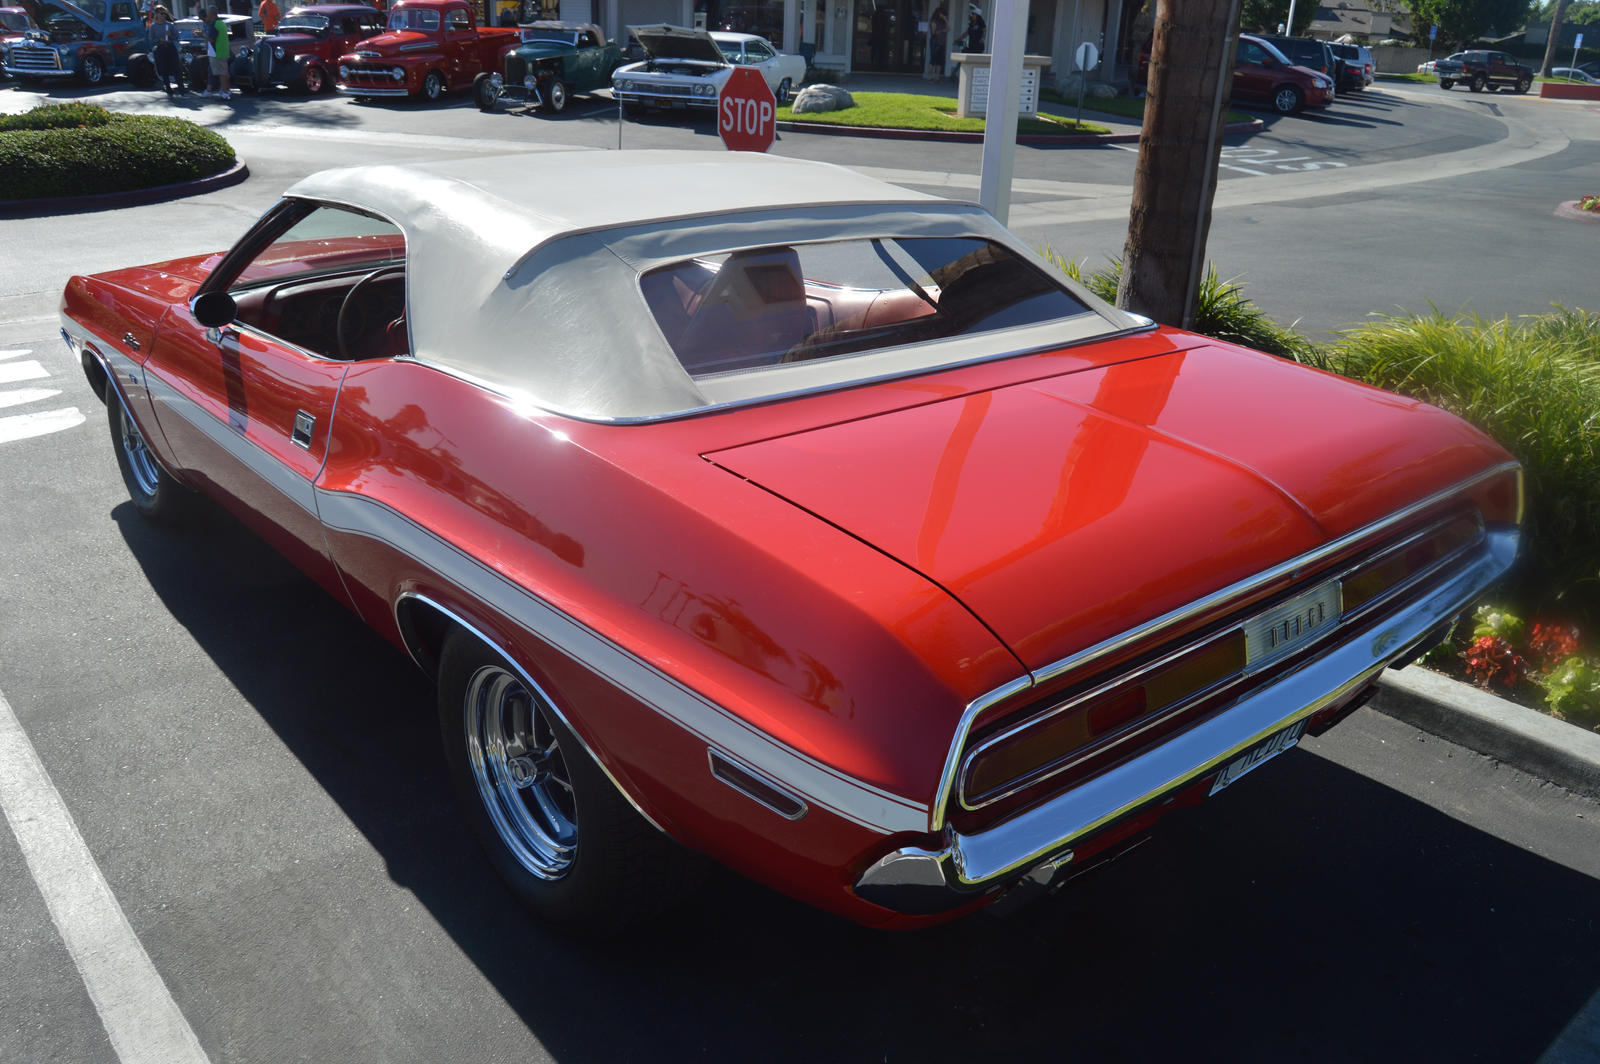 1970 dodge challenger convertible v by brooklyn47 on. Black Bedroom Furniture Sets. Home Design Ideas